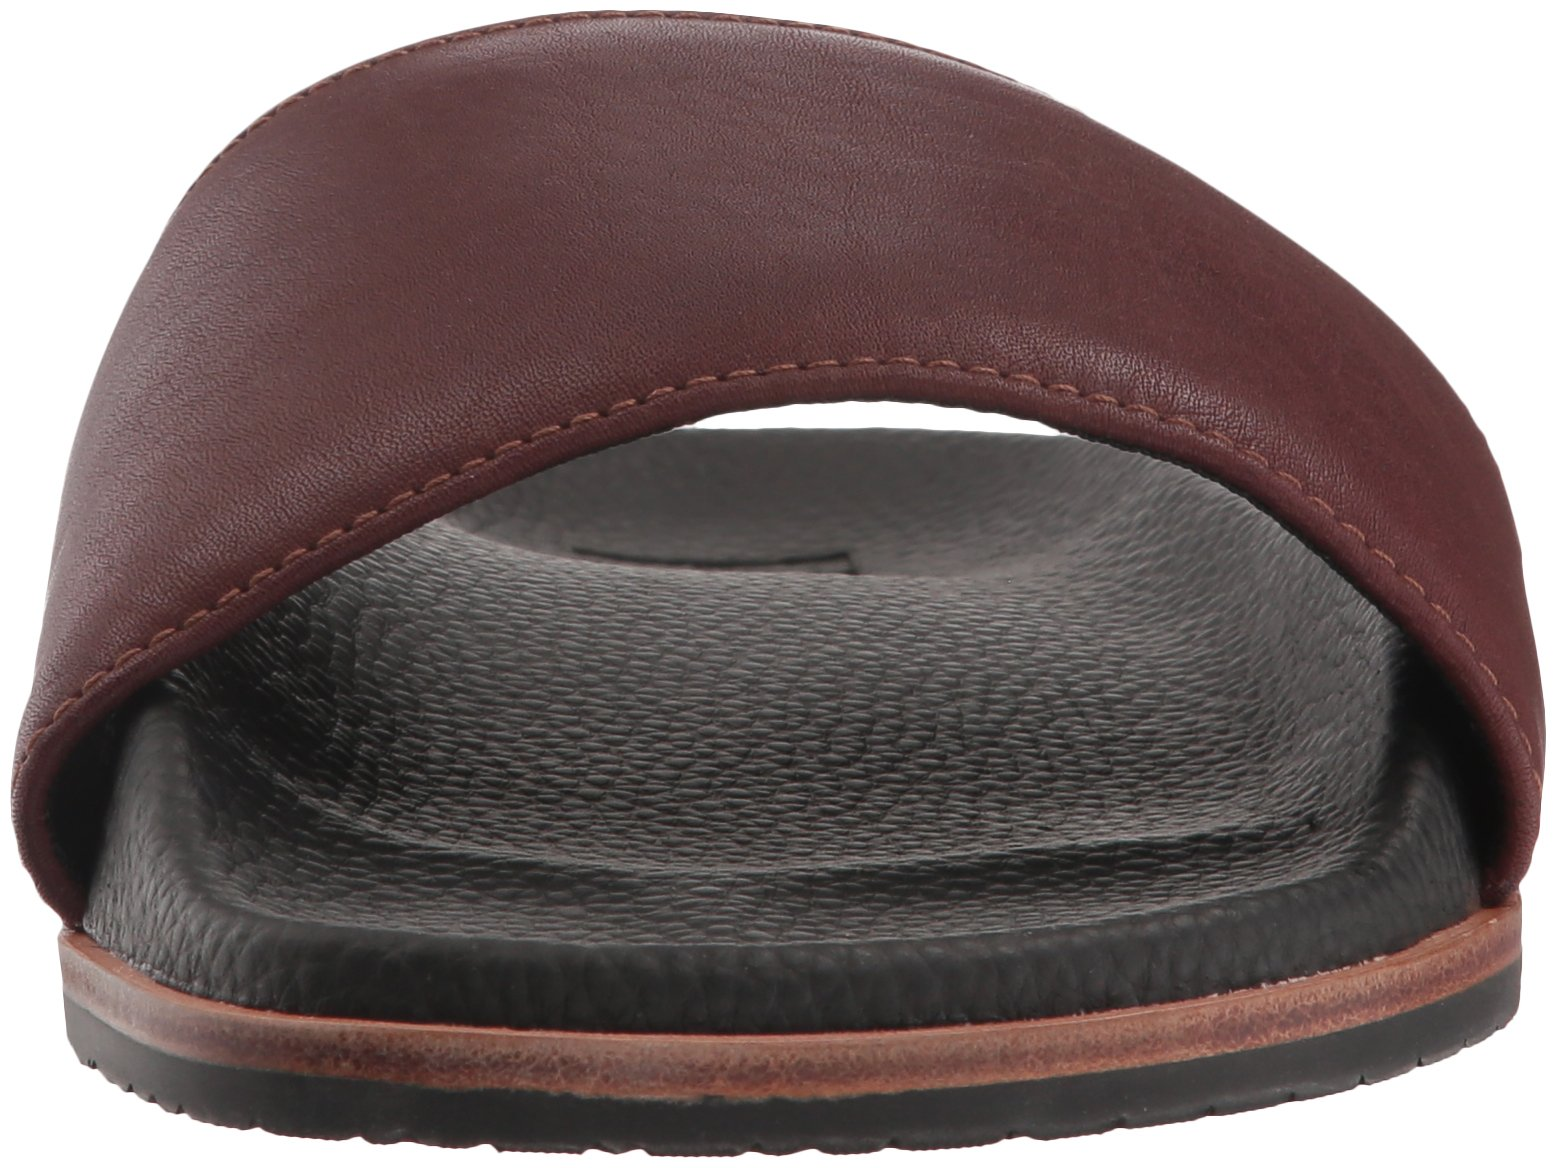 FRYE Men's Emerson Slide Sandal, Brown 12 Medium US by FRYE (Image #4)